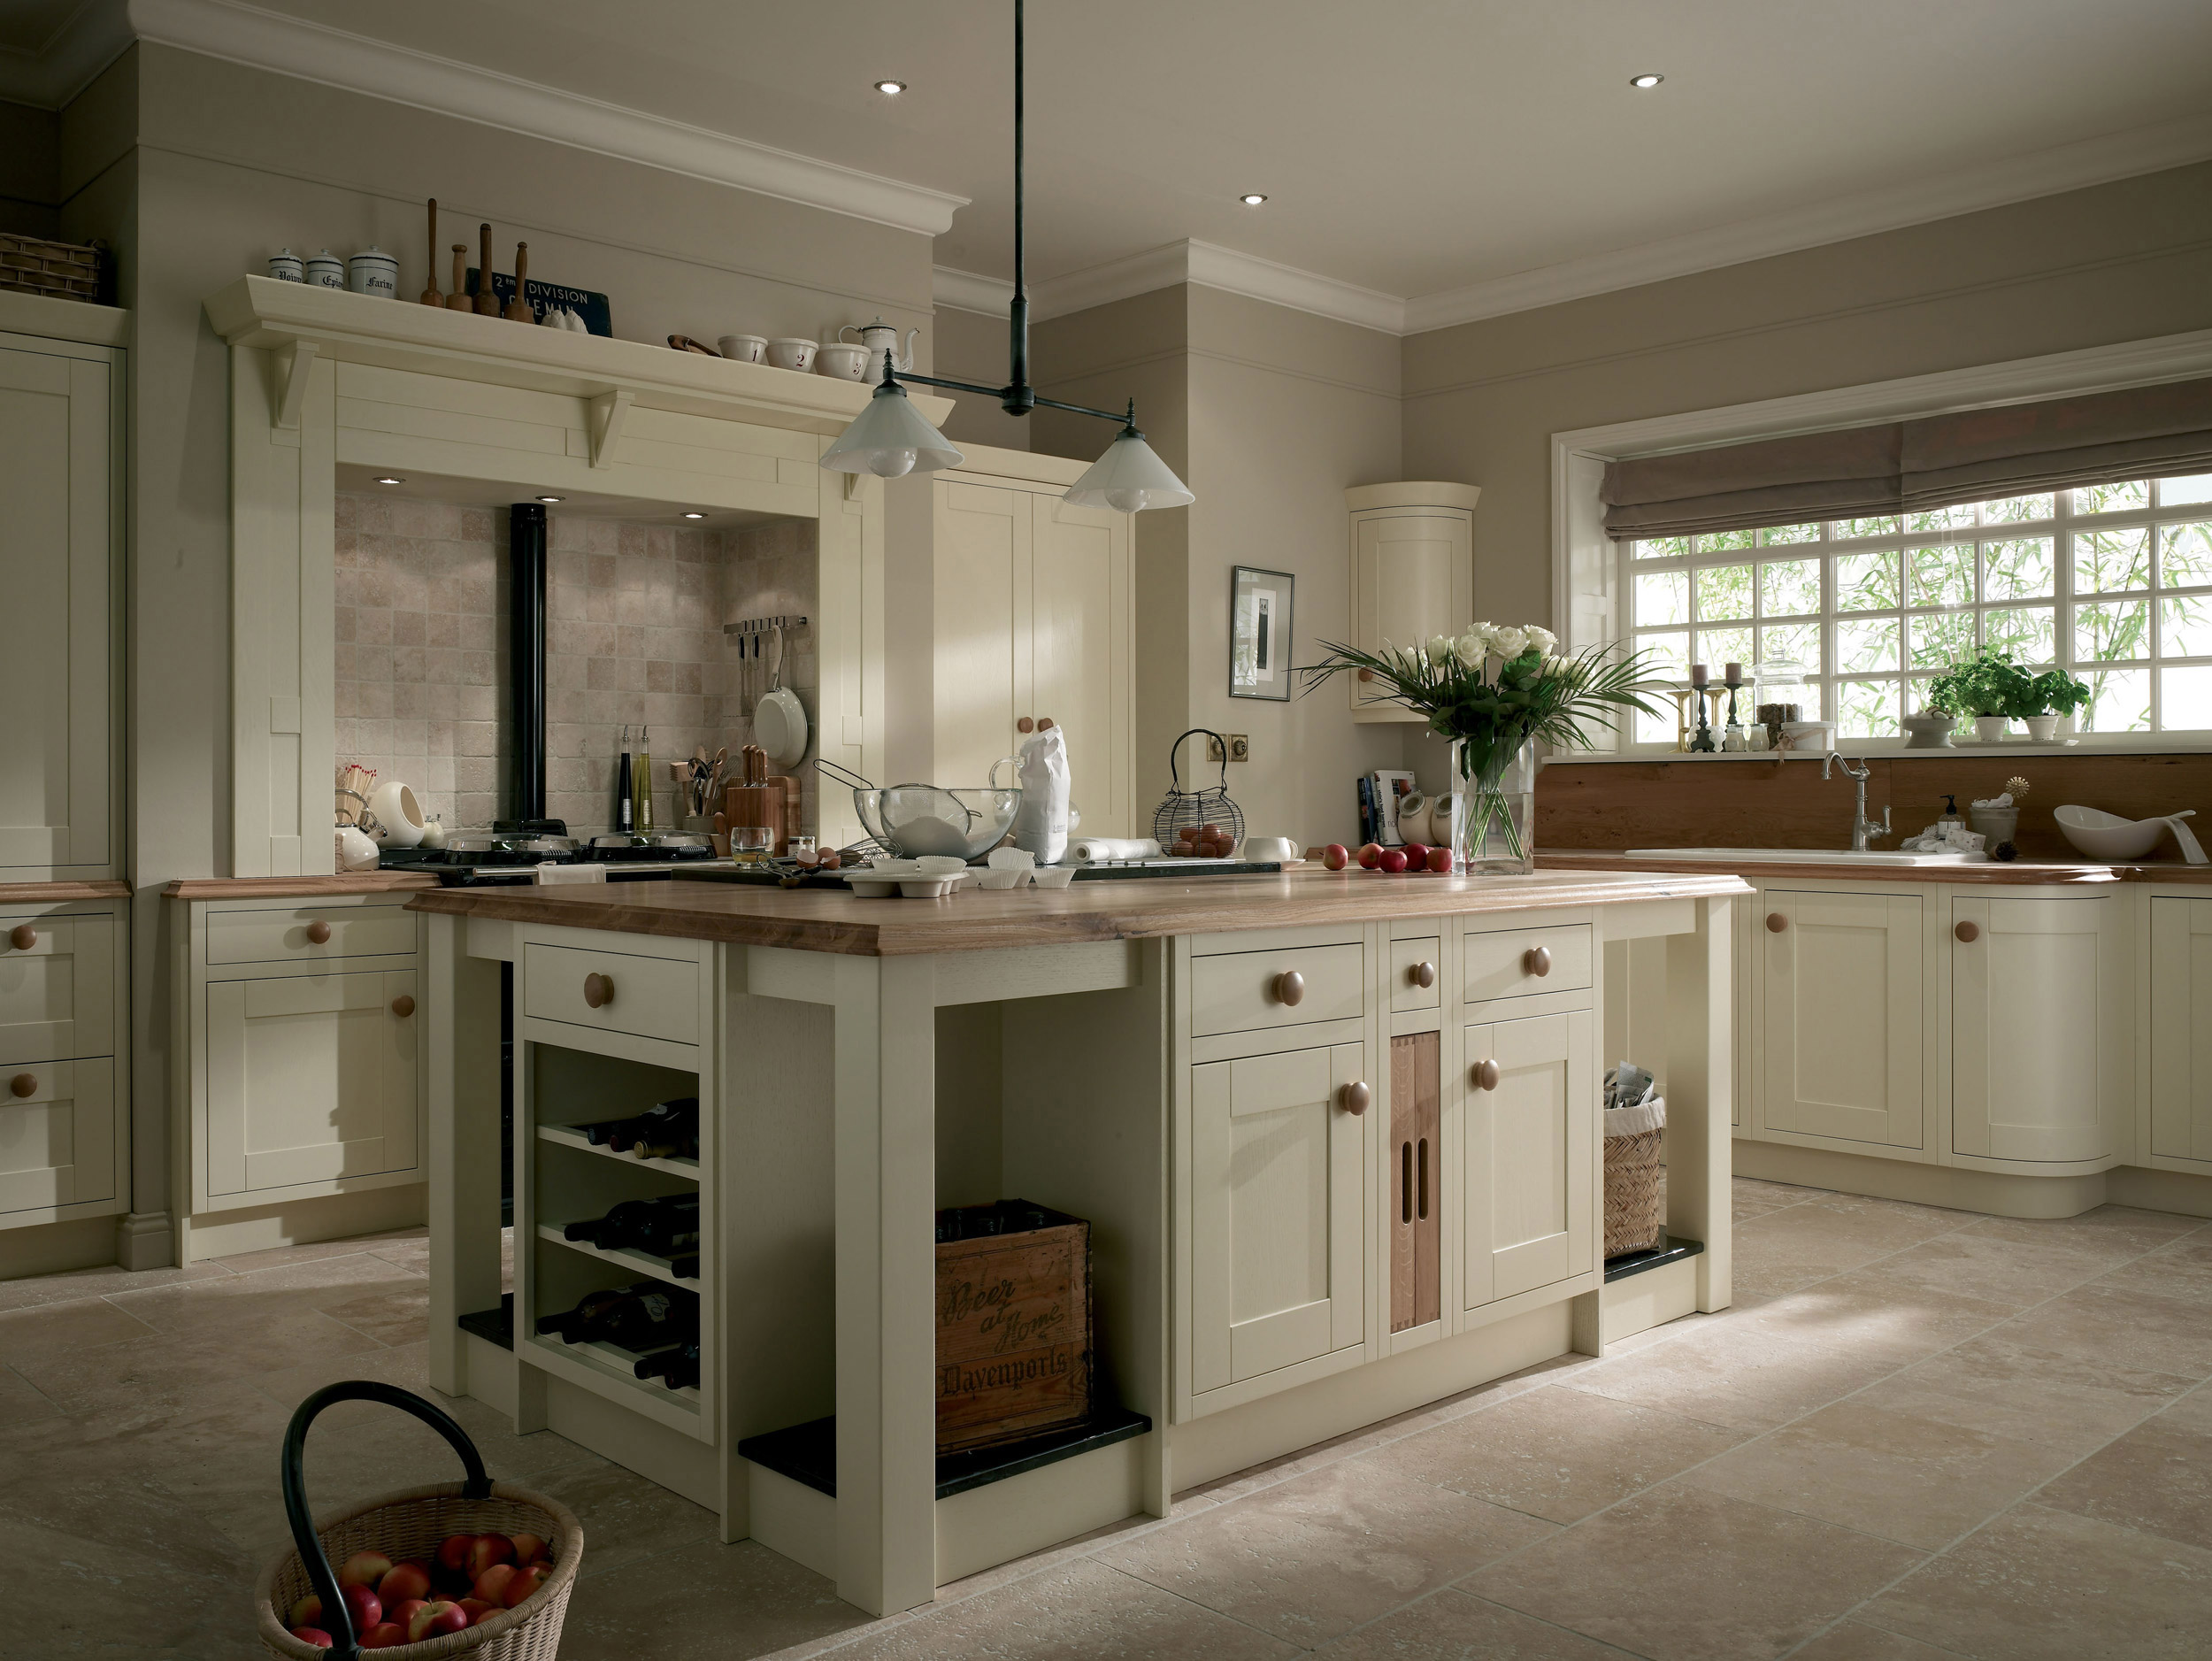 Ivory traditional kitchen - Country style kitchen cabinets design ...